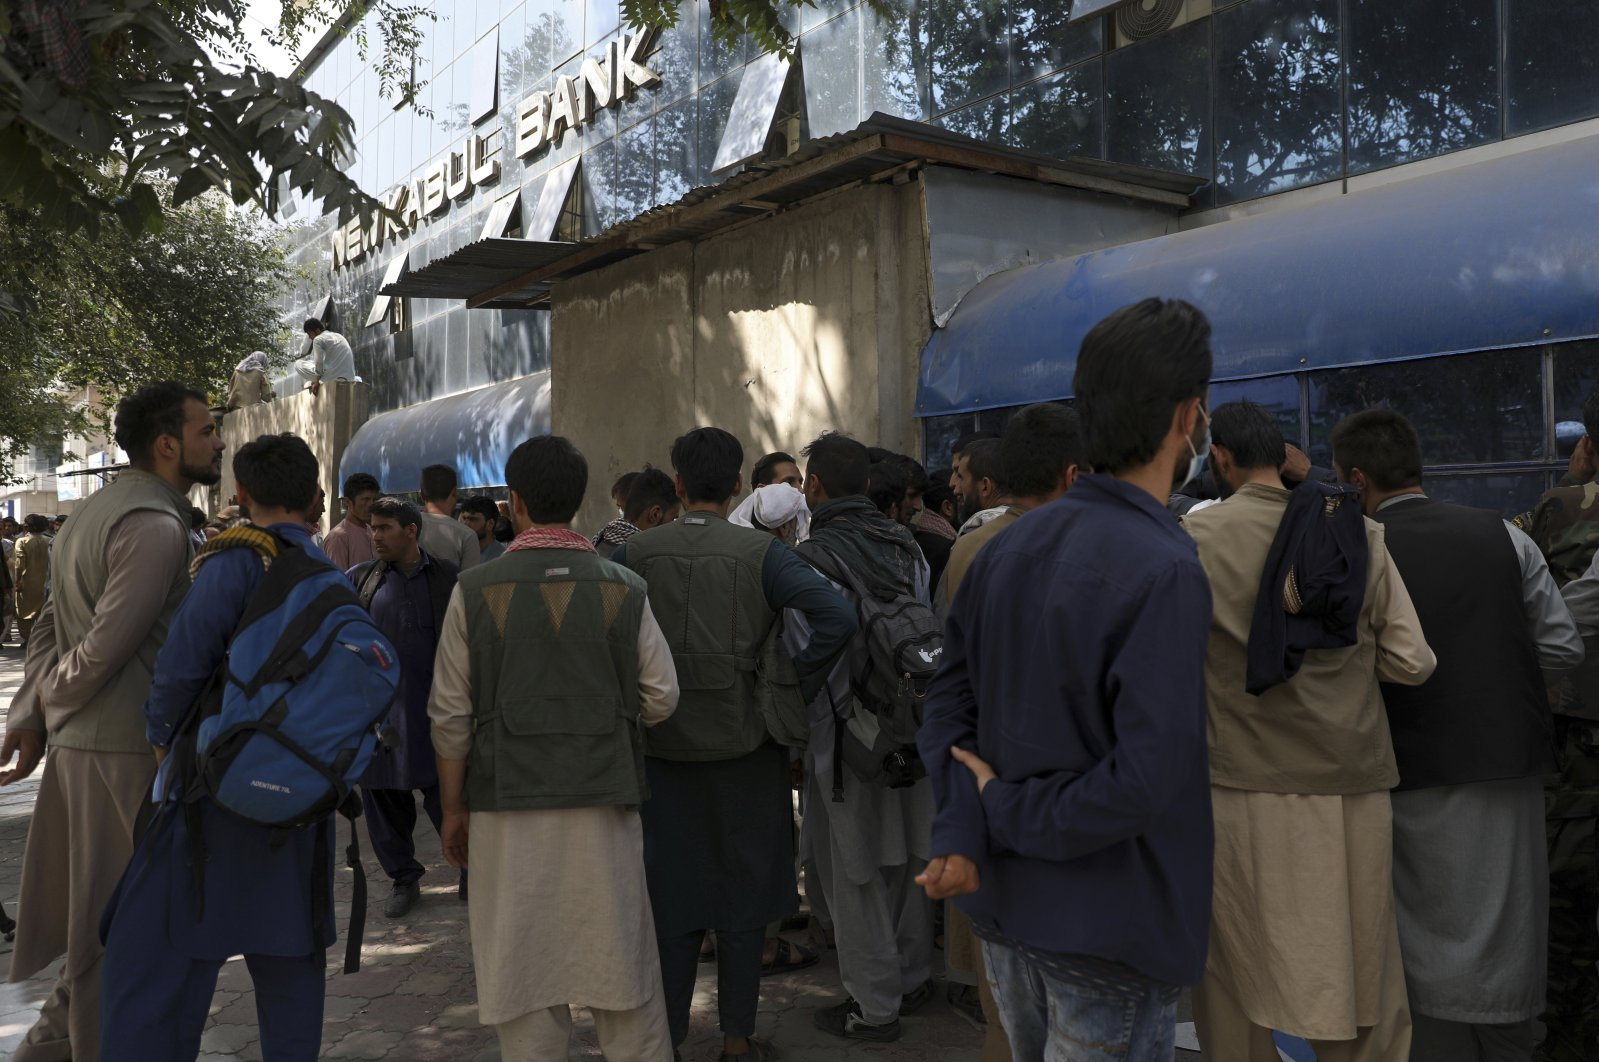 Afghans wait in long lines for hours to try to withdraw money, in front of Kabul Bank, in Kabul, Afghanistan, Aug. 15, 2021. (AP Photo)